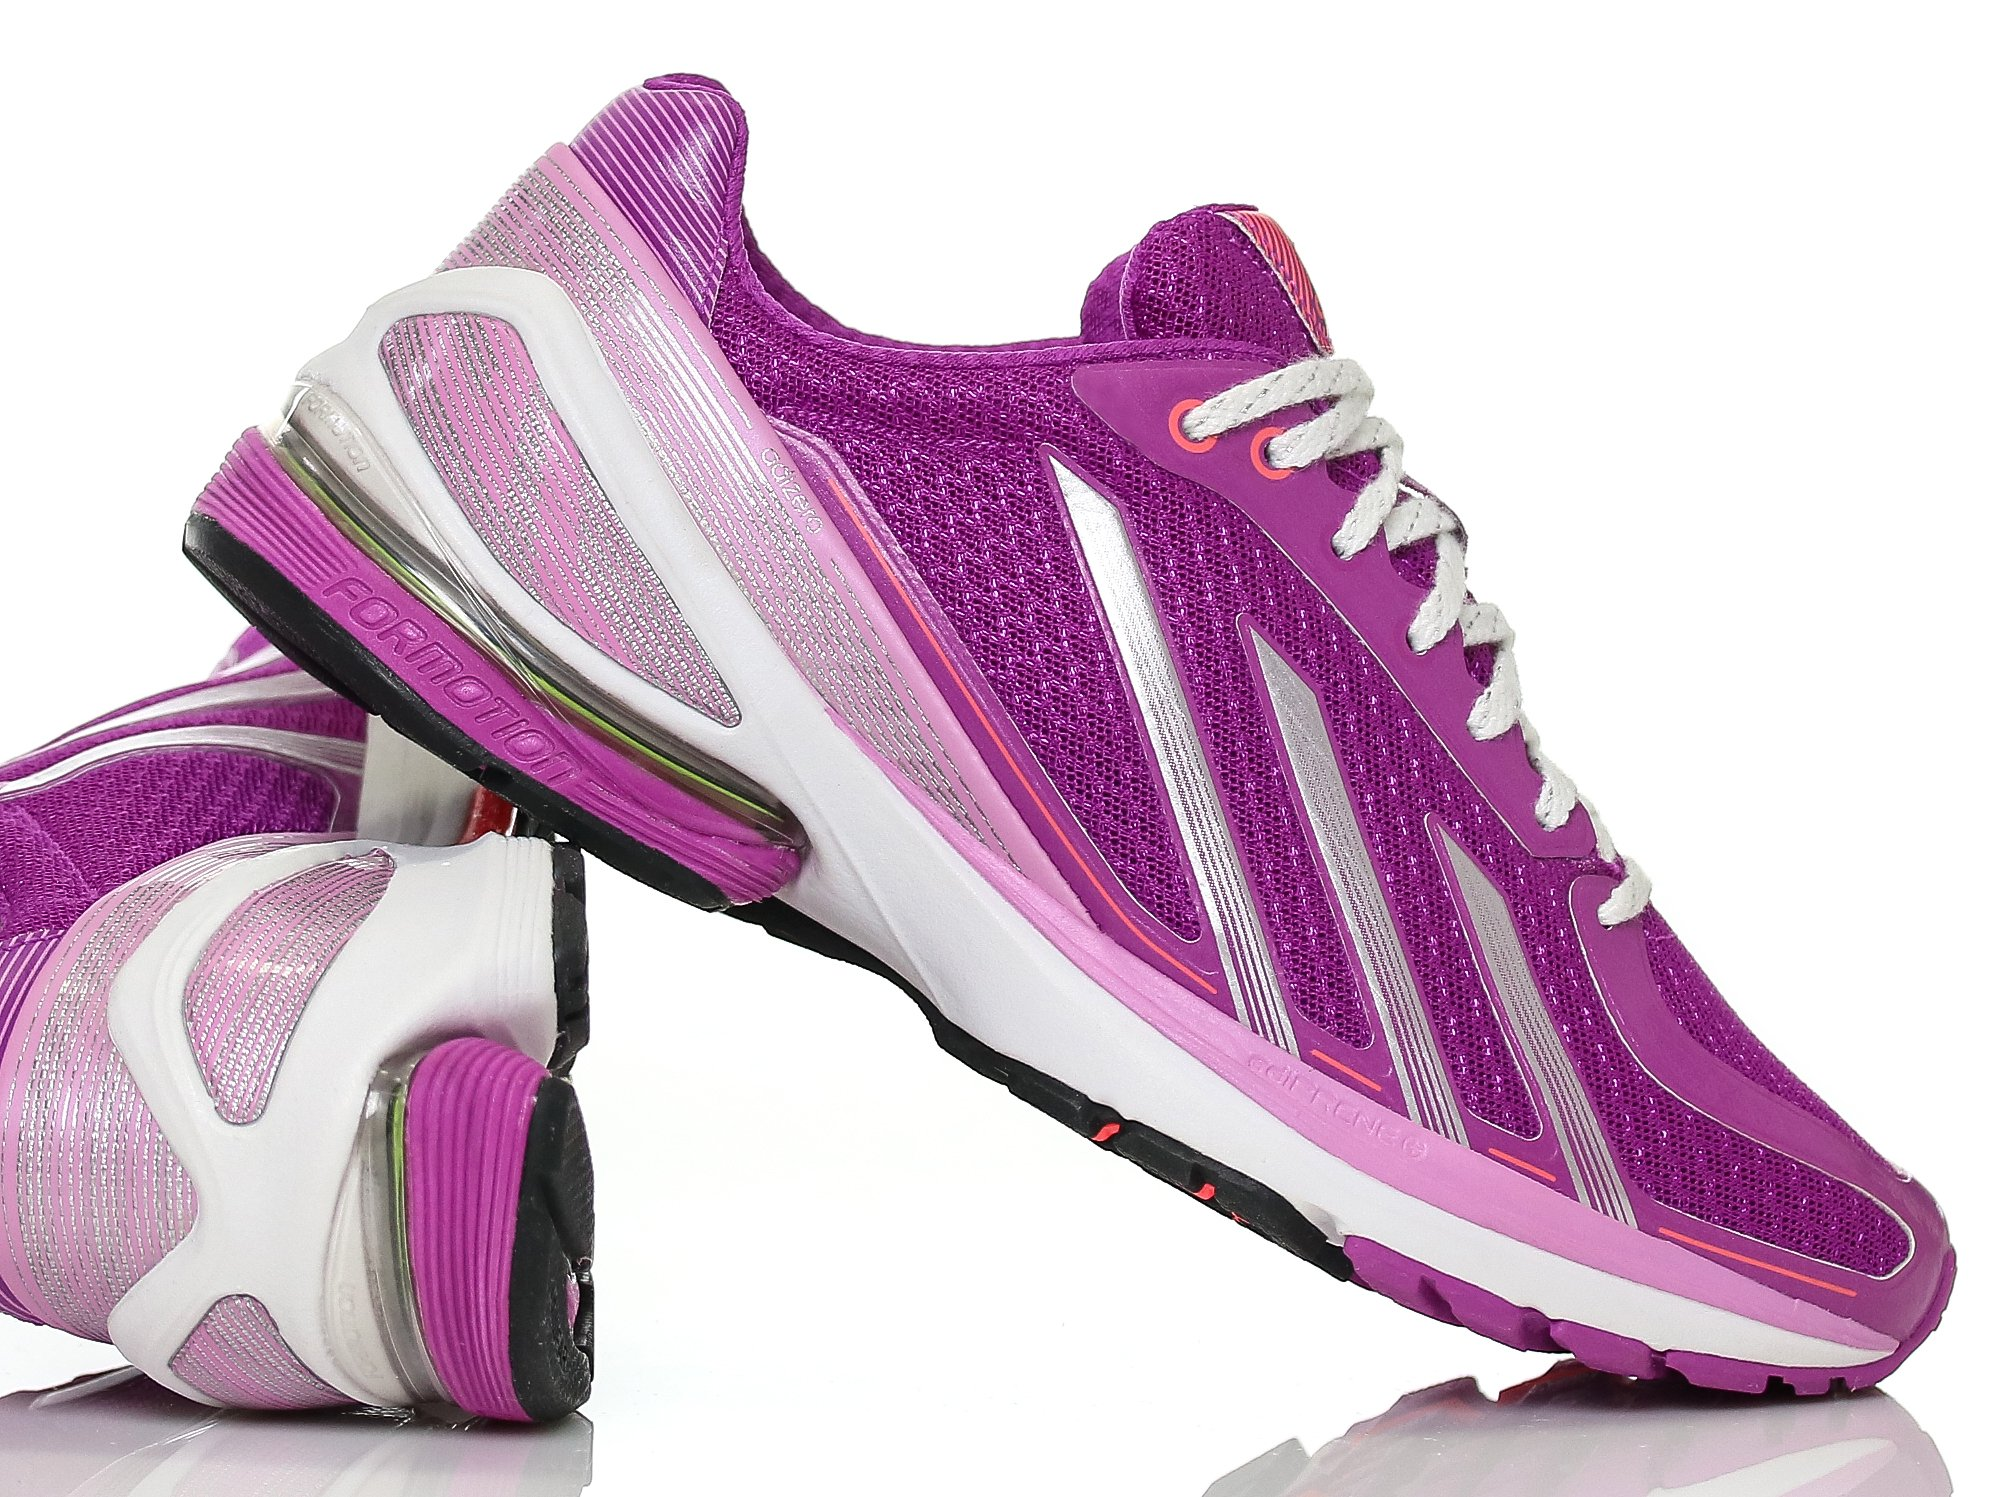 the latest c7ab5 08f31 Buty damskie Adidas Adizero F50 Runner 3 W Q20858